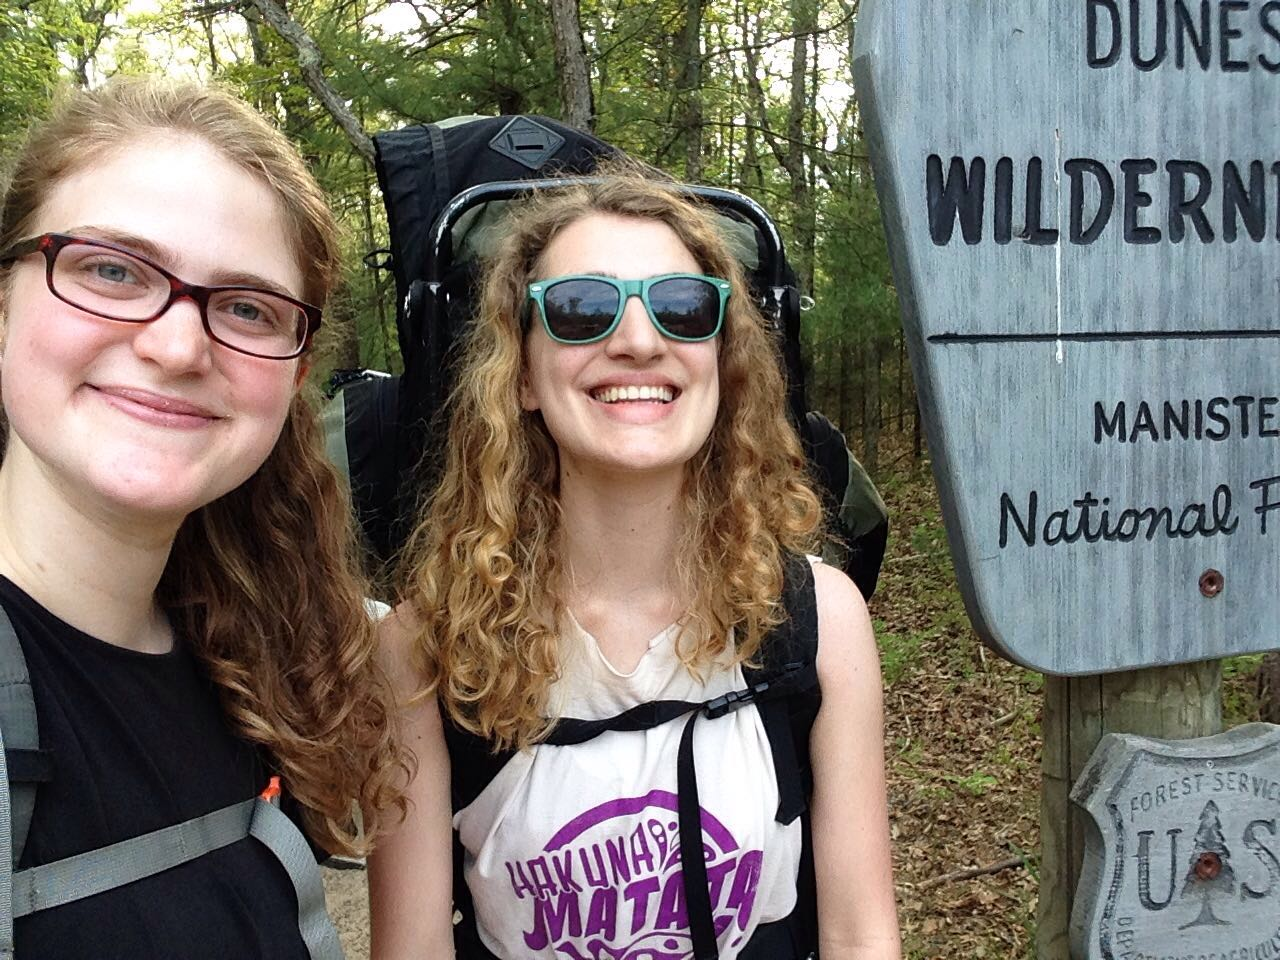 Author and friend taking a selfie with hiking packs on backs